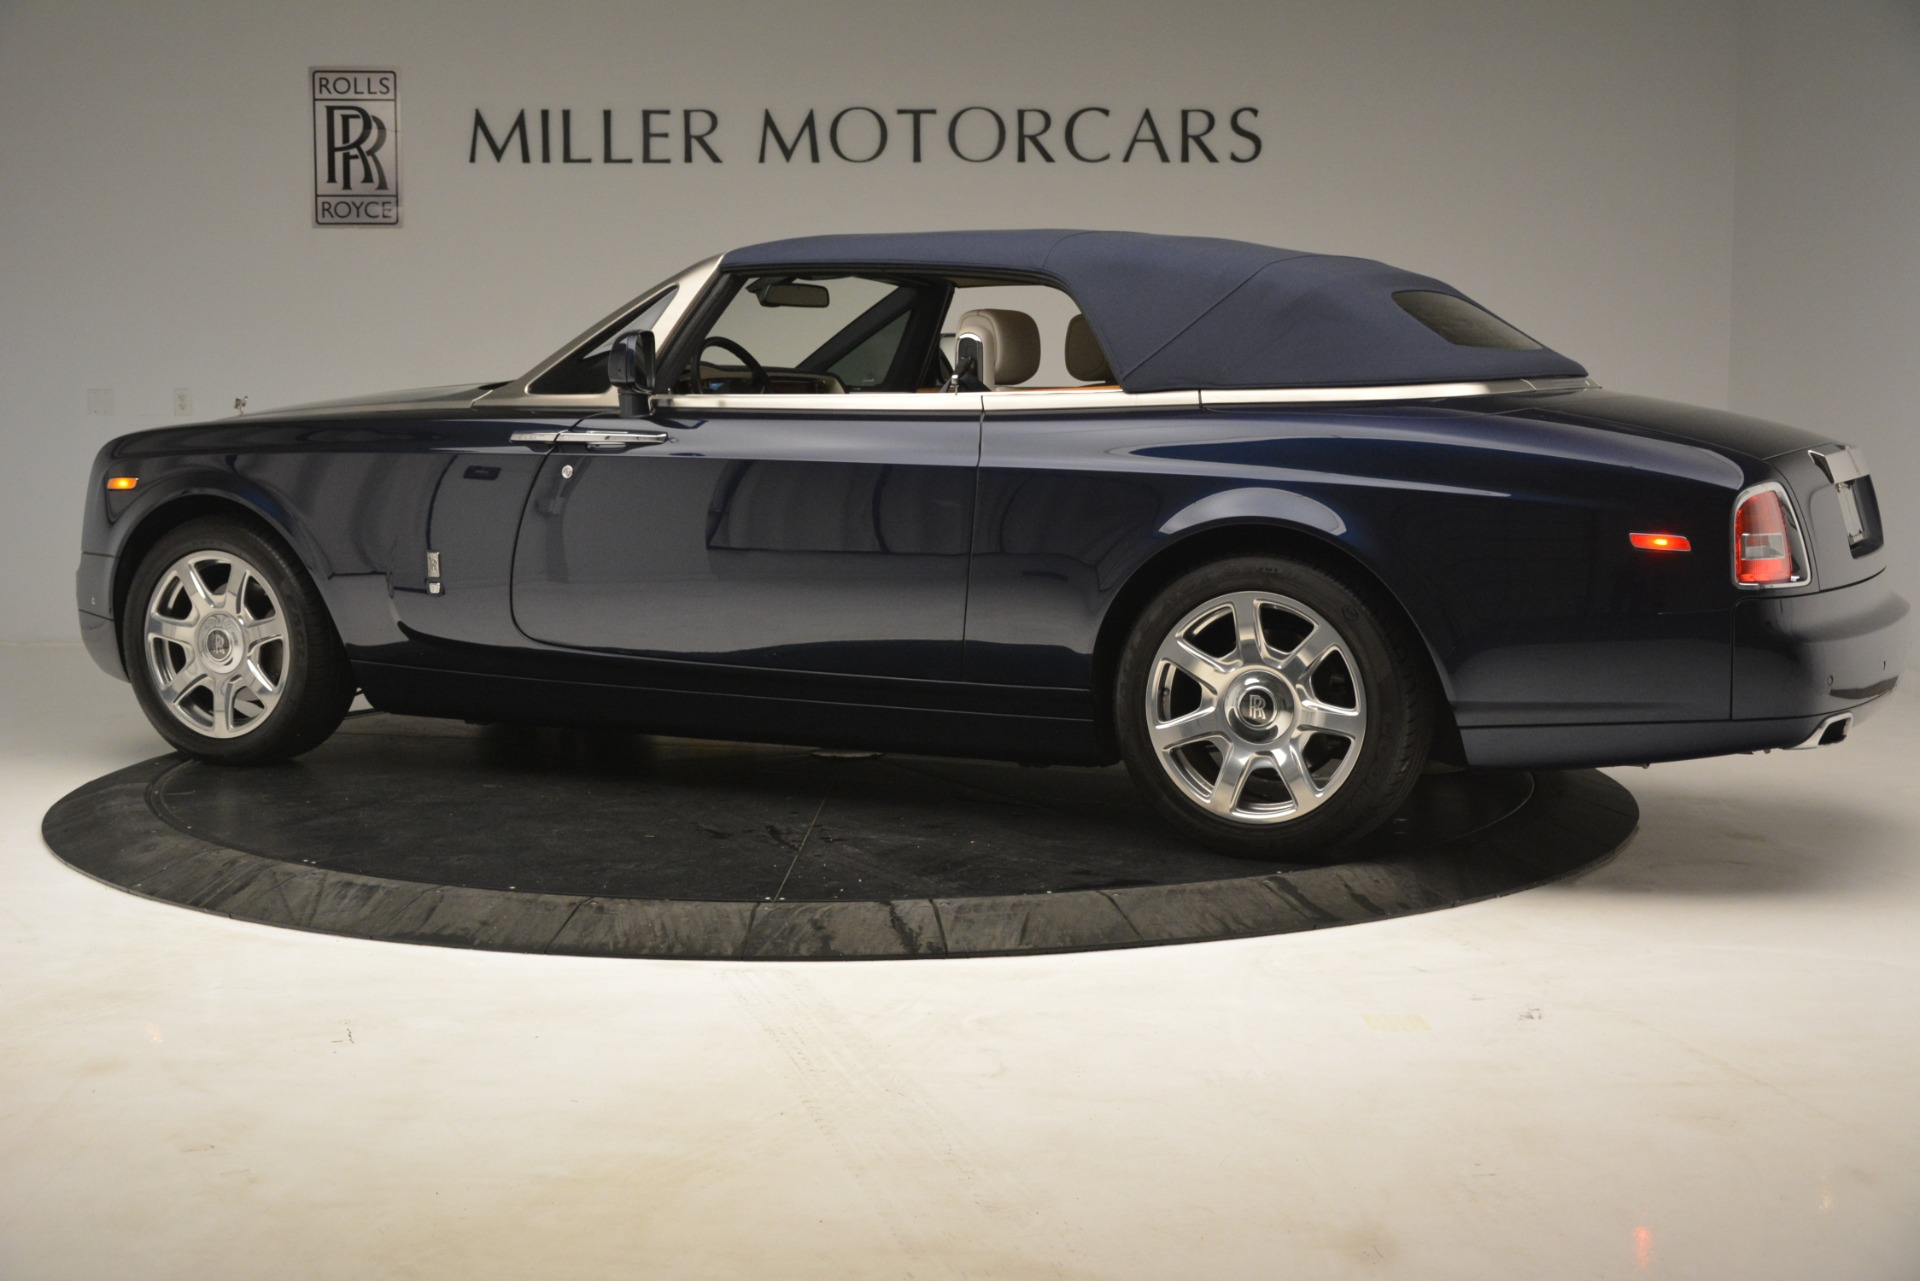 Used 2013 Rolls-Royce Phantom Drophead Coupe  For Sale In Westport, CT 2999_p19